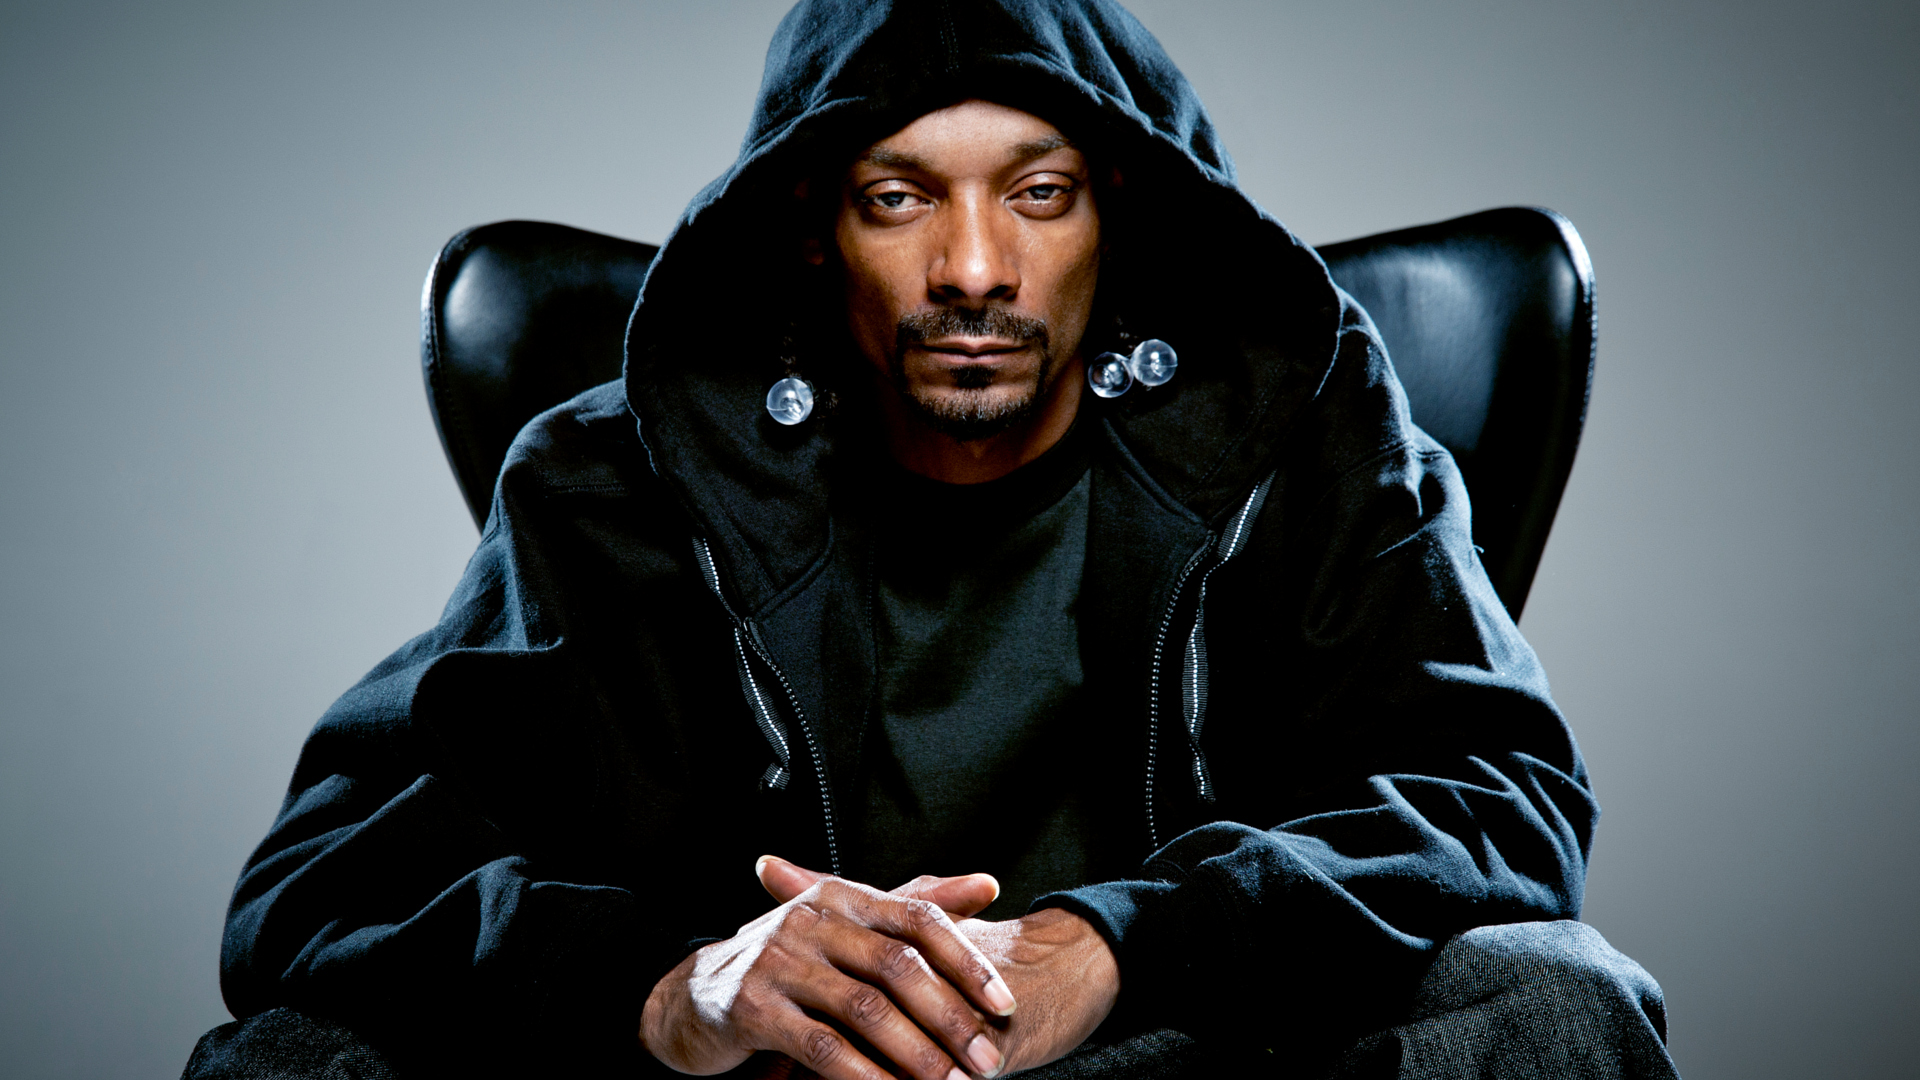 Snoop Dogg Drops New 'Promise You This' Joint [Listen] snoop dogg 51150de51ebec